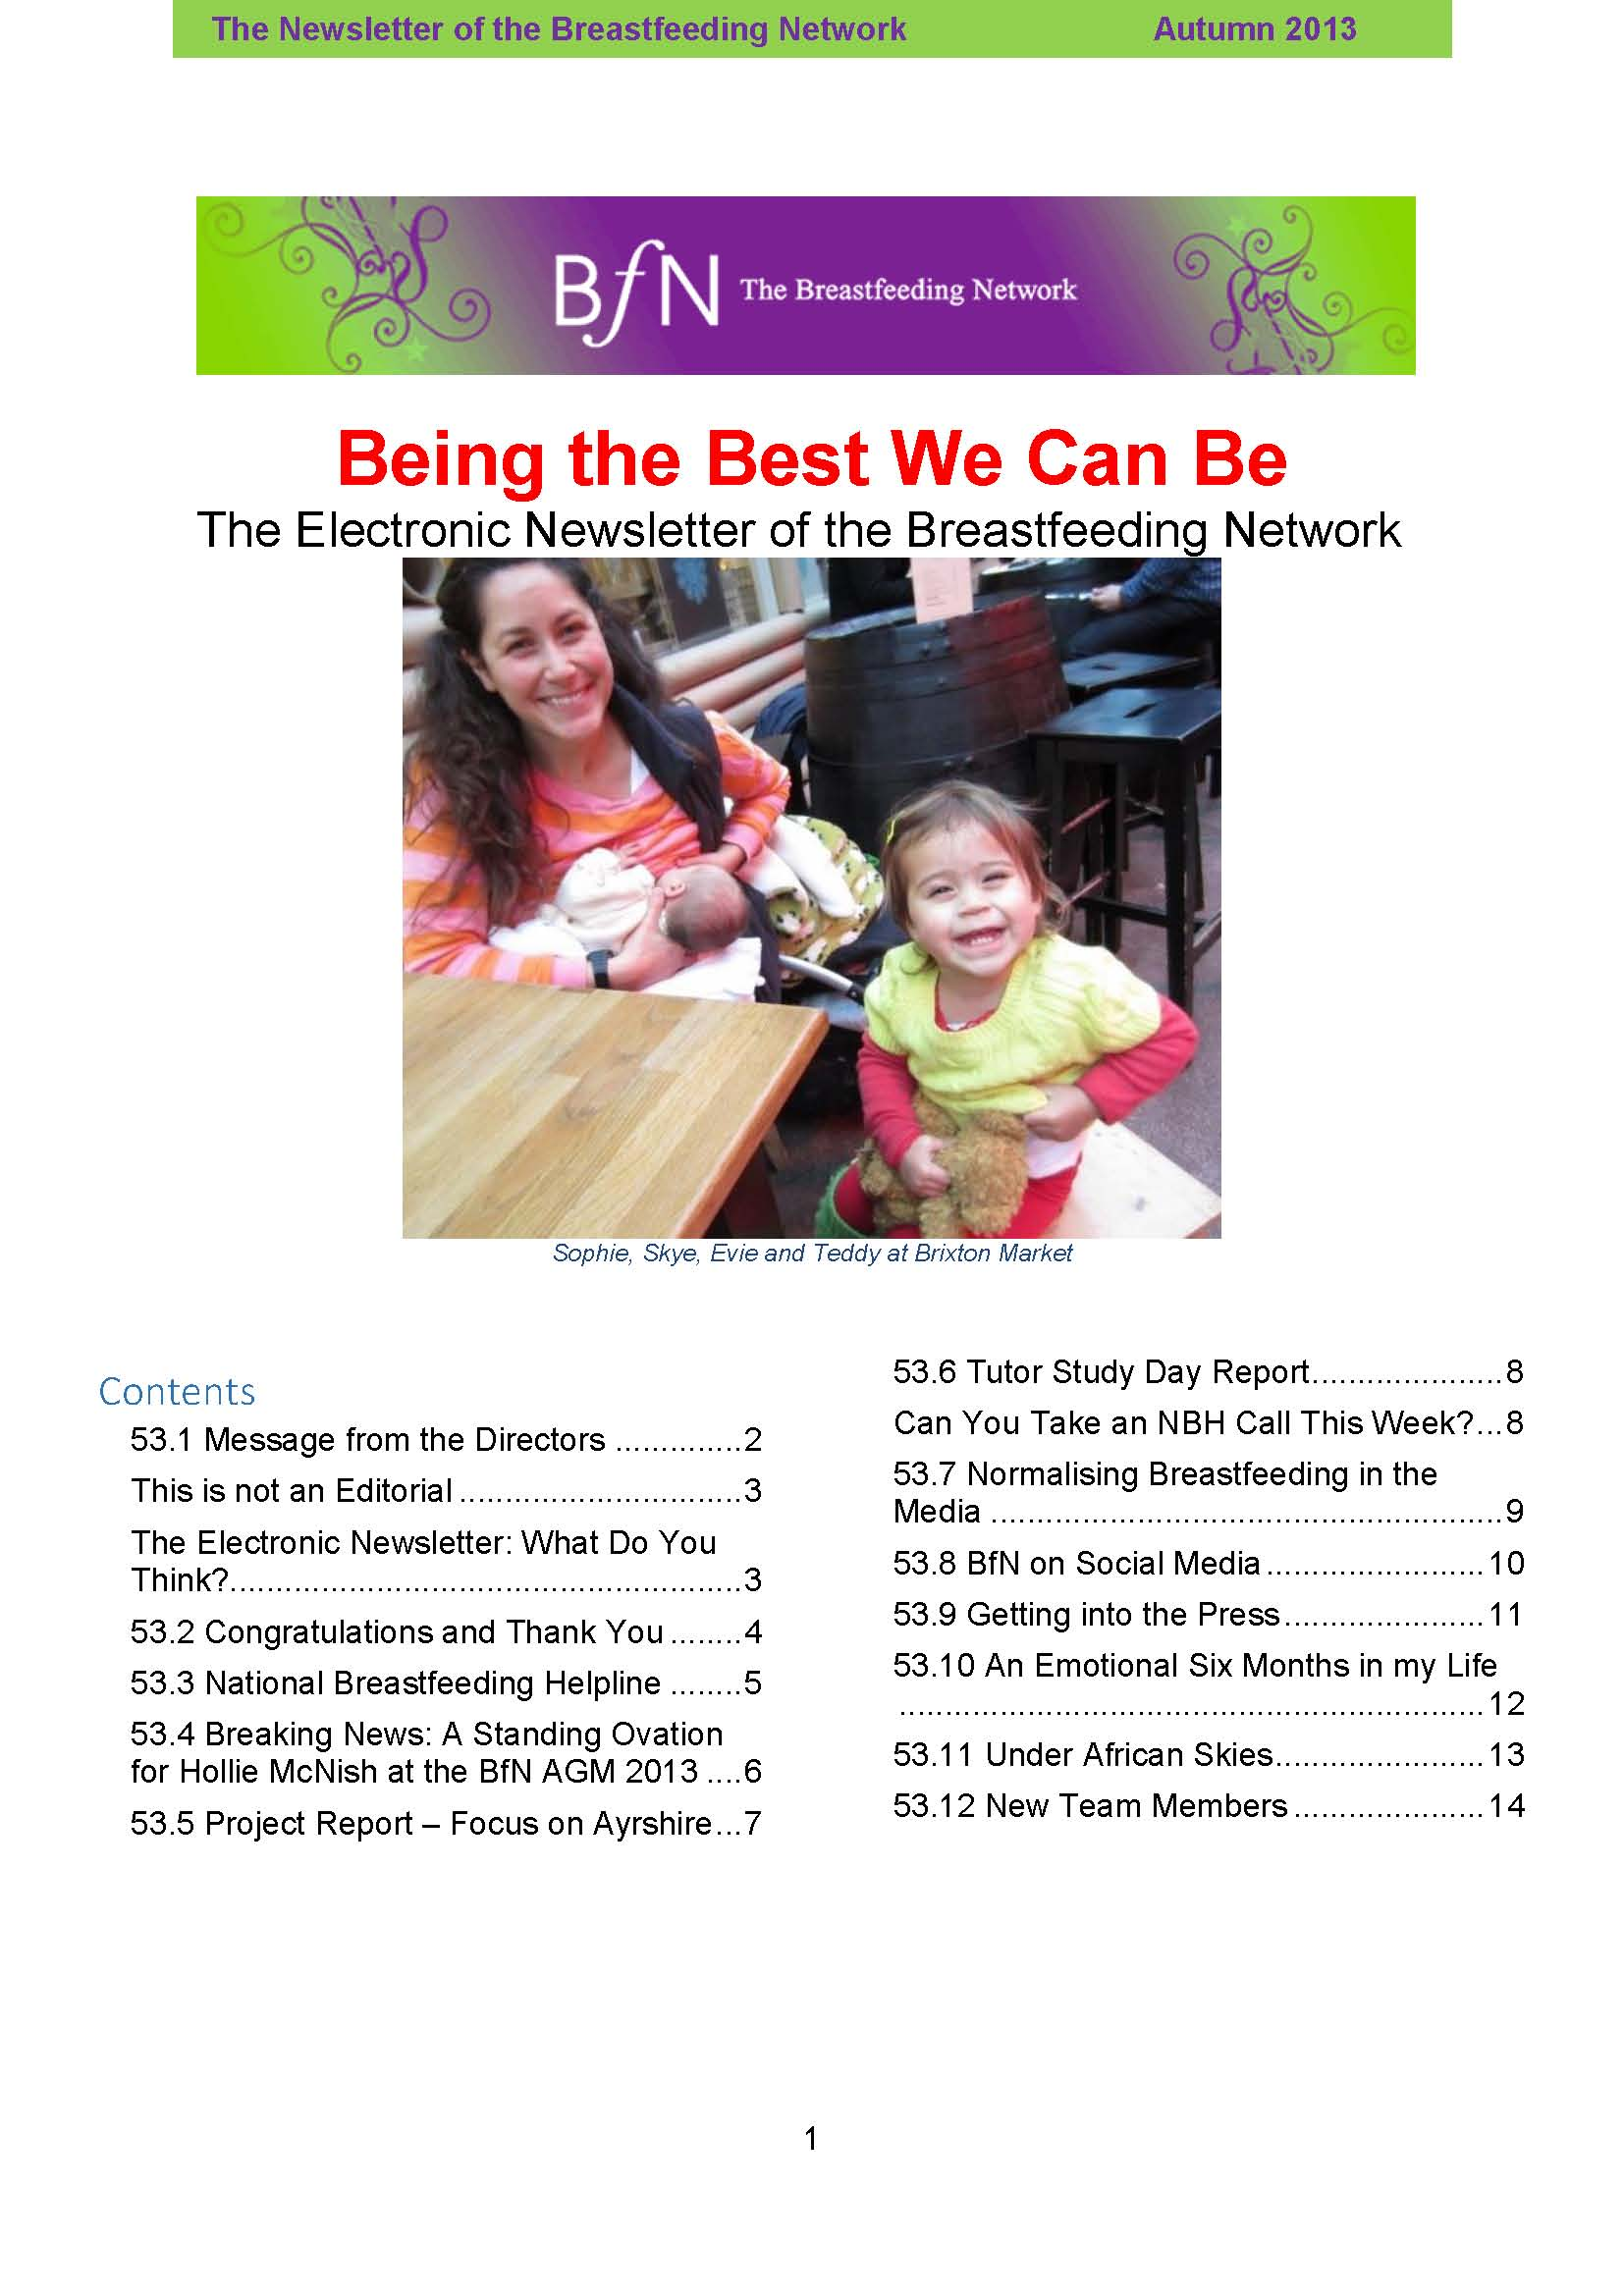 BfN Newsletter 53 Autumn 2013